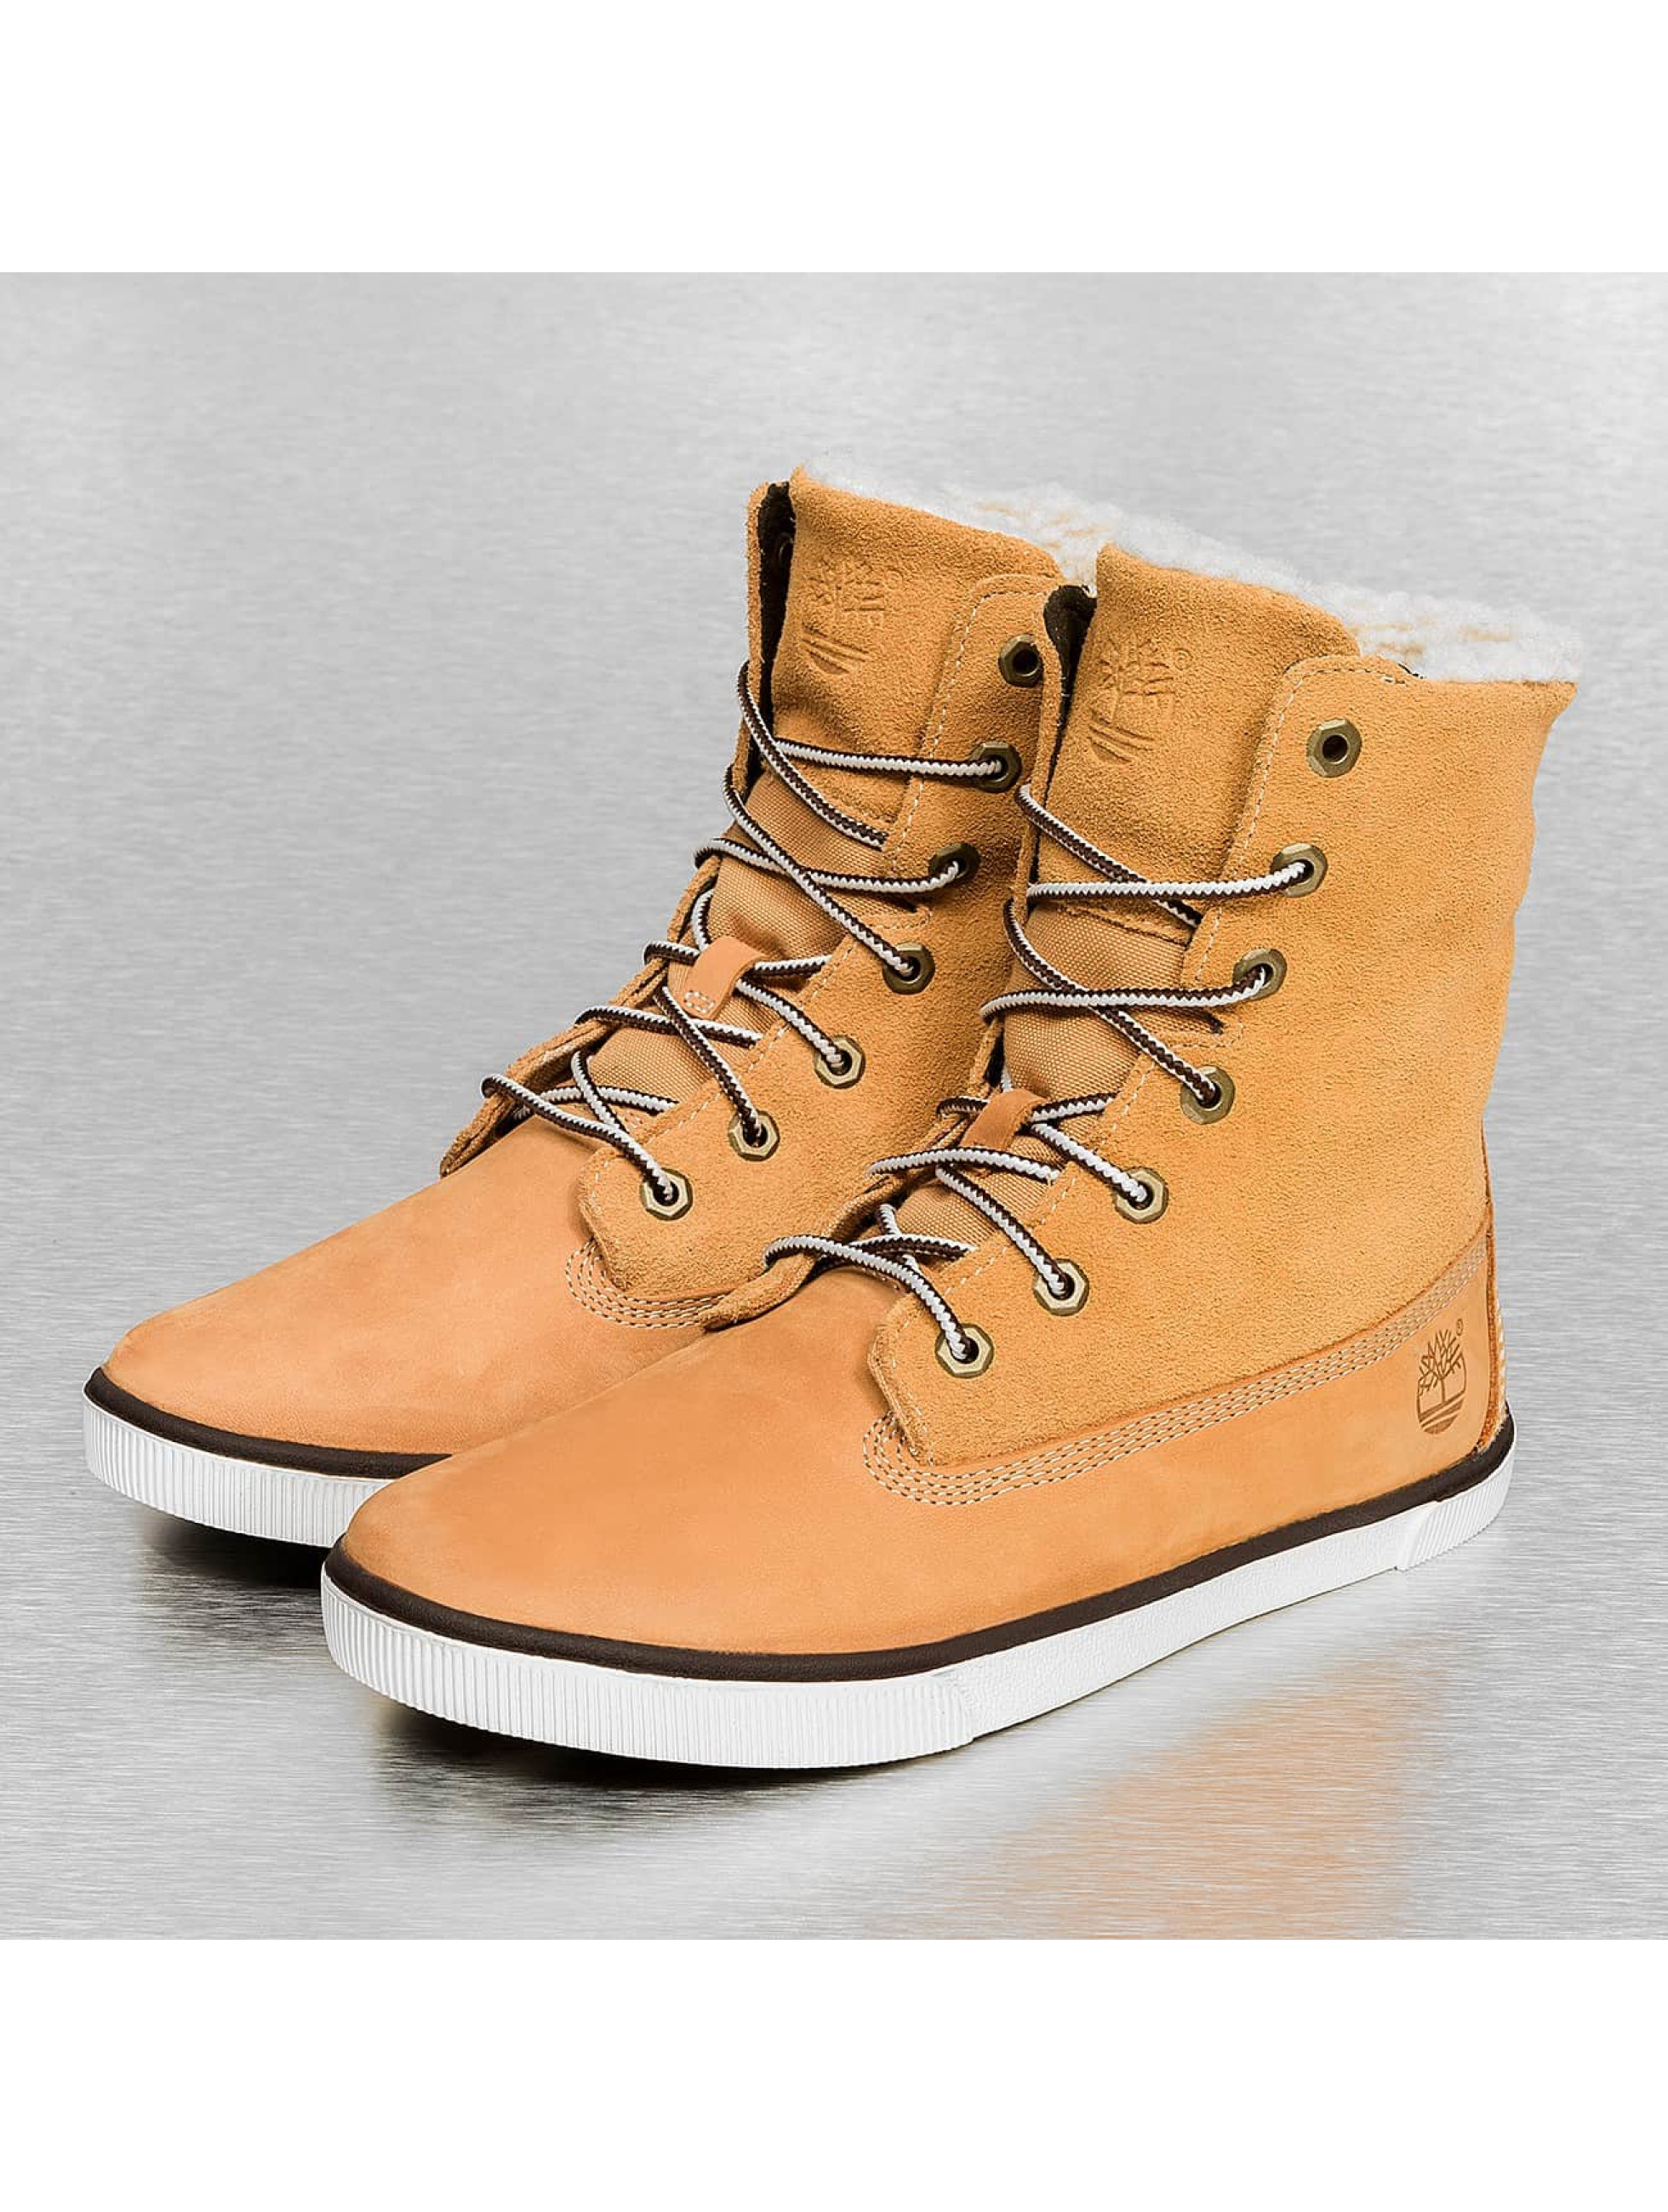 Timberland Deering Fold Down Boots Wheat